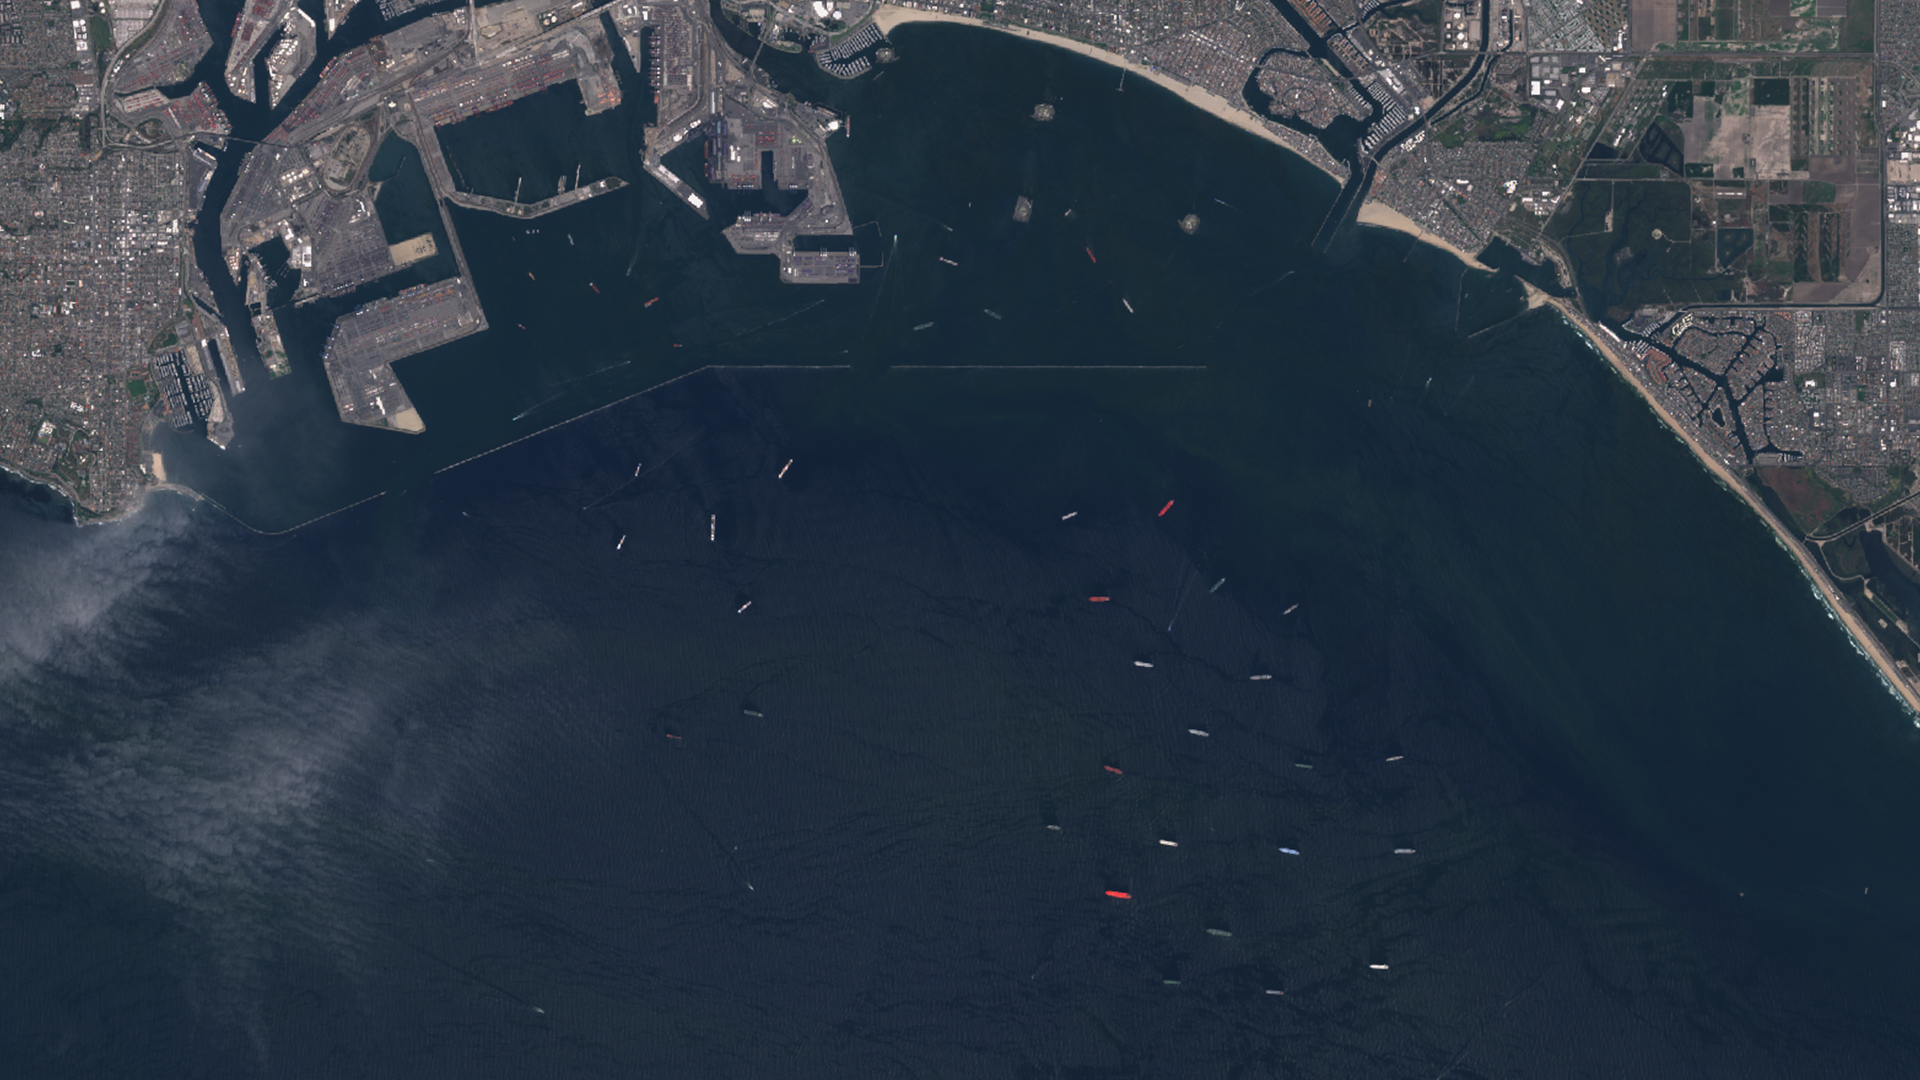 Satellite images show tankers off the coast of Port of L.A./Long Beach on April 23, 2020. (Sentinel-2/European Space Agency)